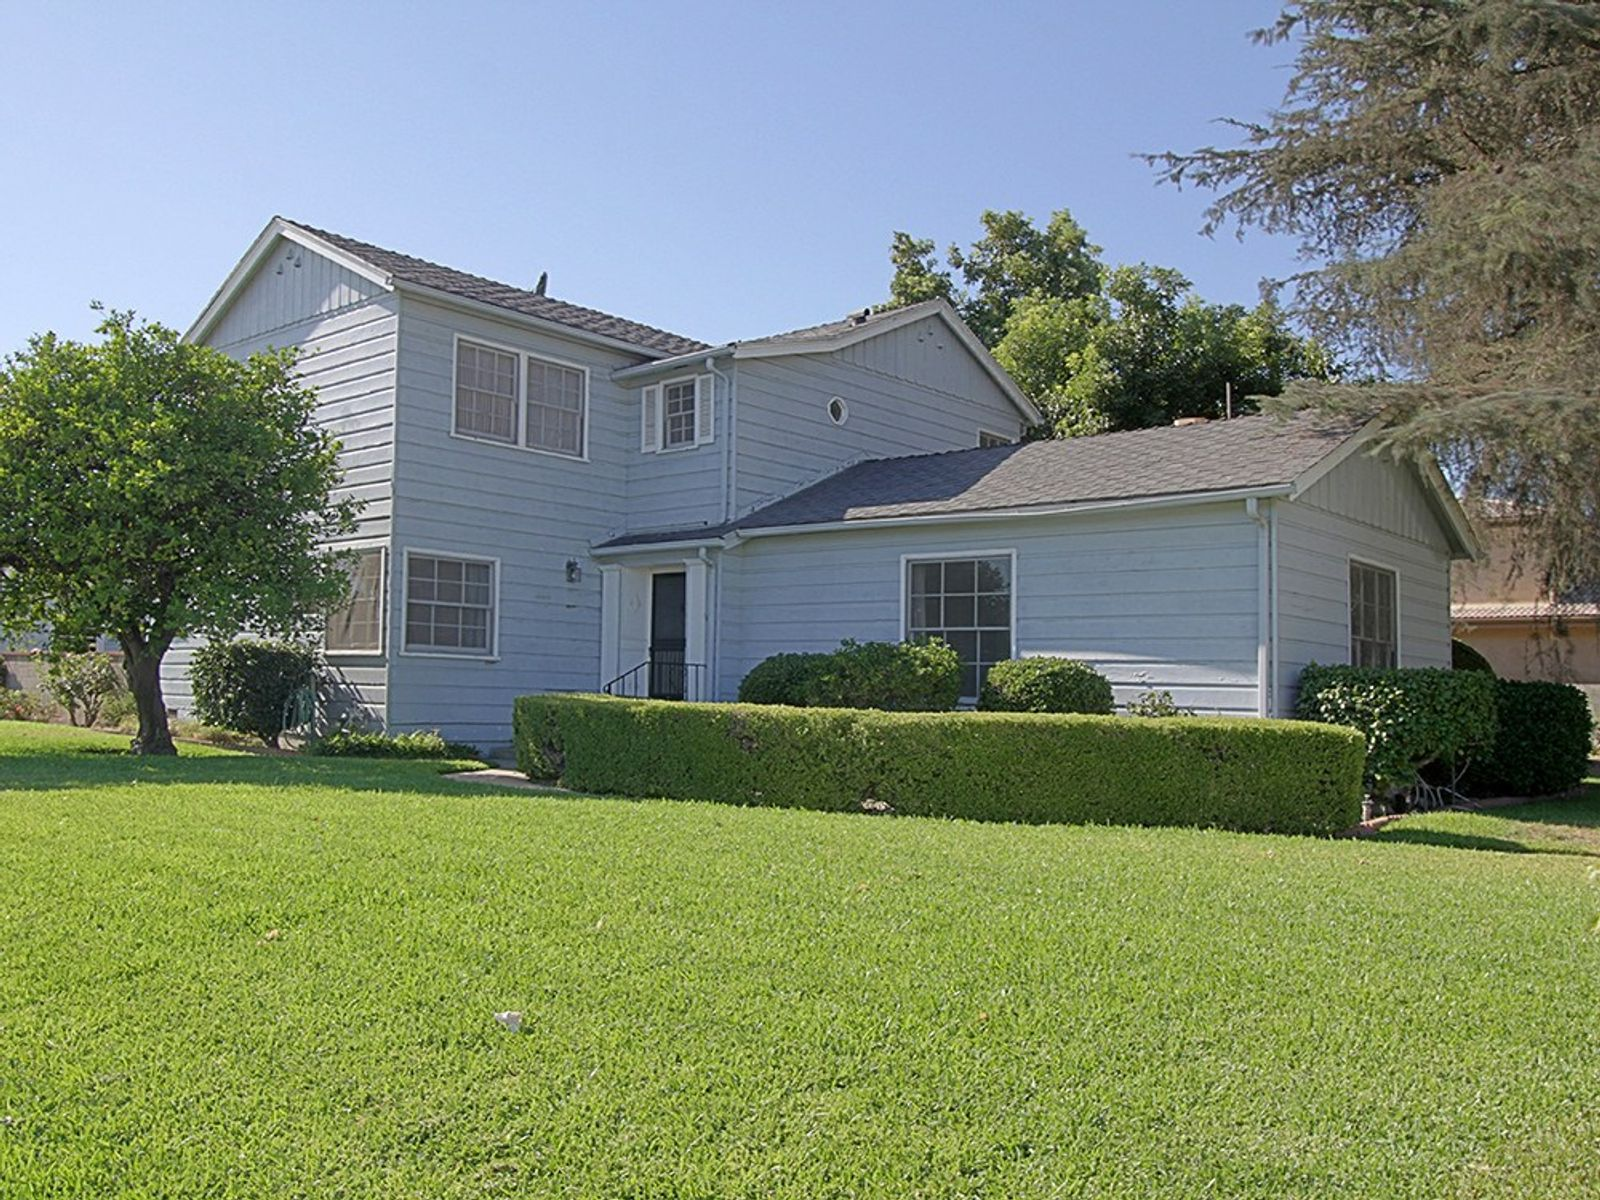 Two-story Traditional on Double Lot, Temple City CA Single Family Home - Pasadena Real Estate